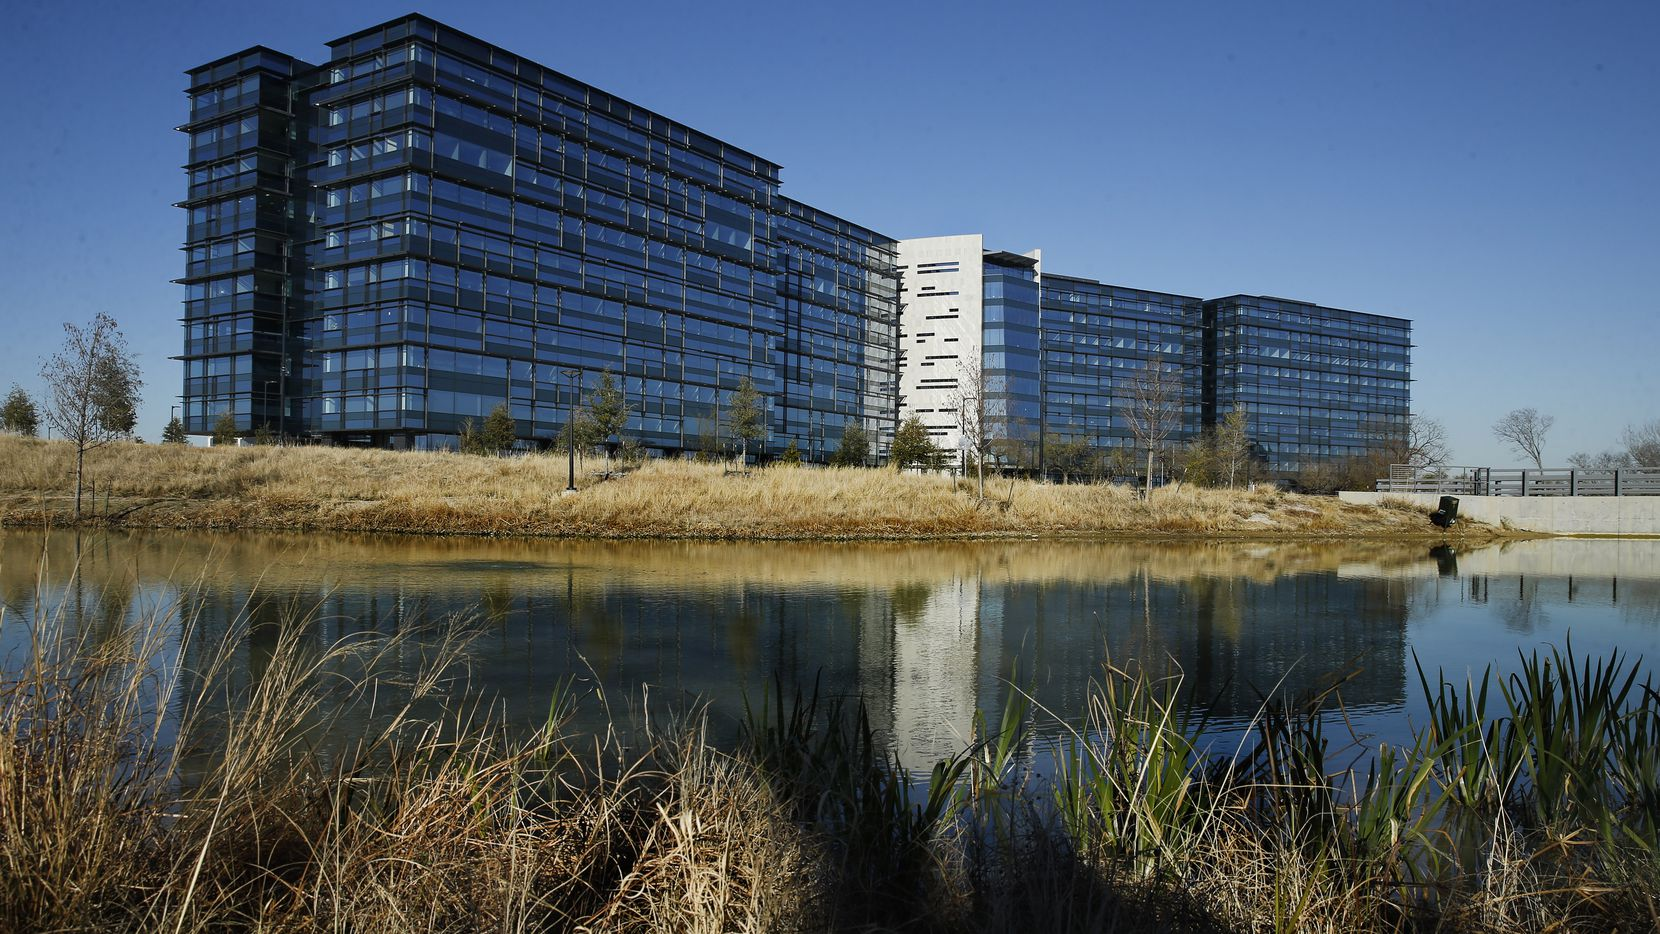 Pioneer Natural Resources' headquarters in the Las Colinas development of Irving.